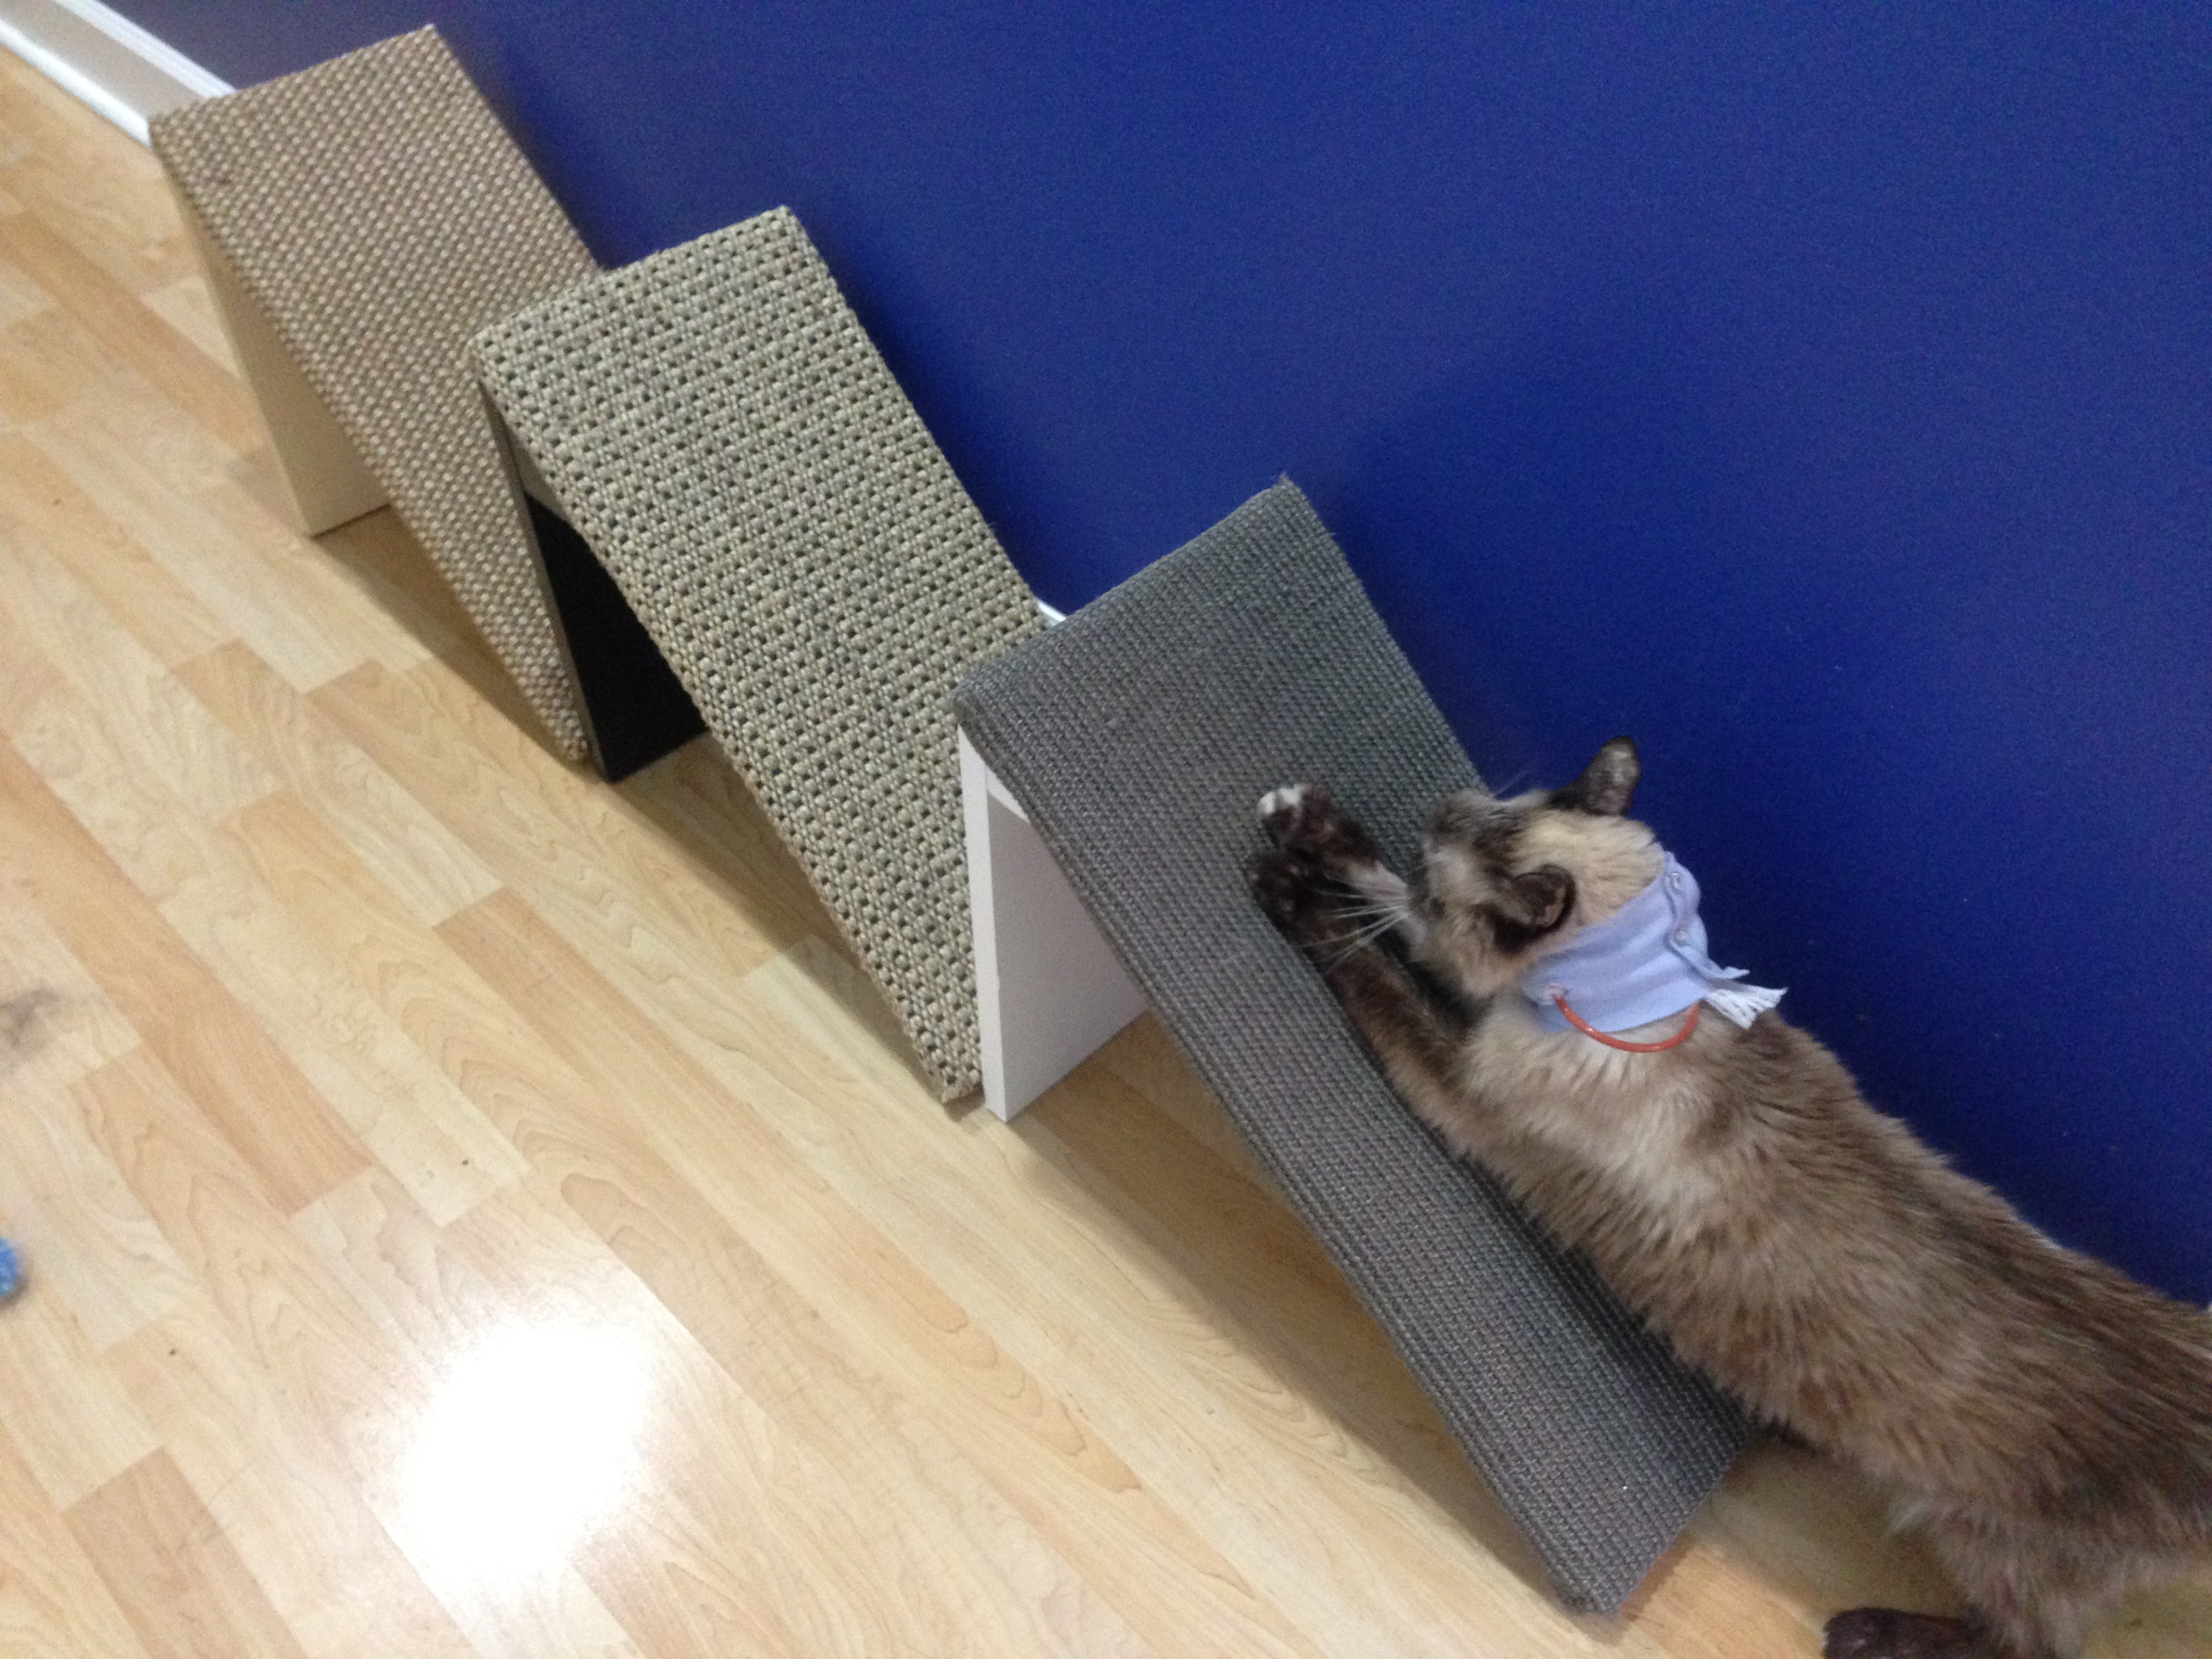 Demonstrating scratch pad use.